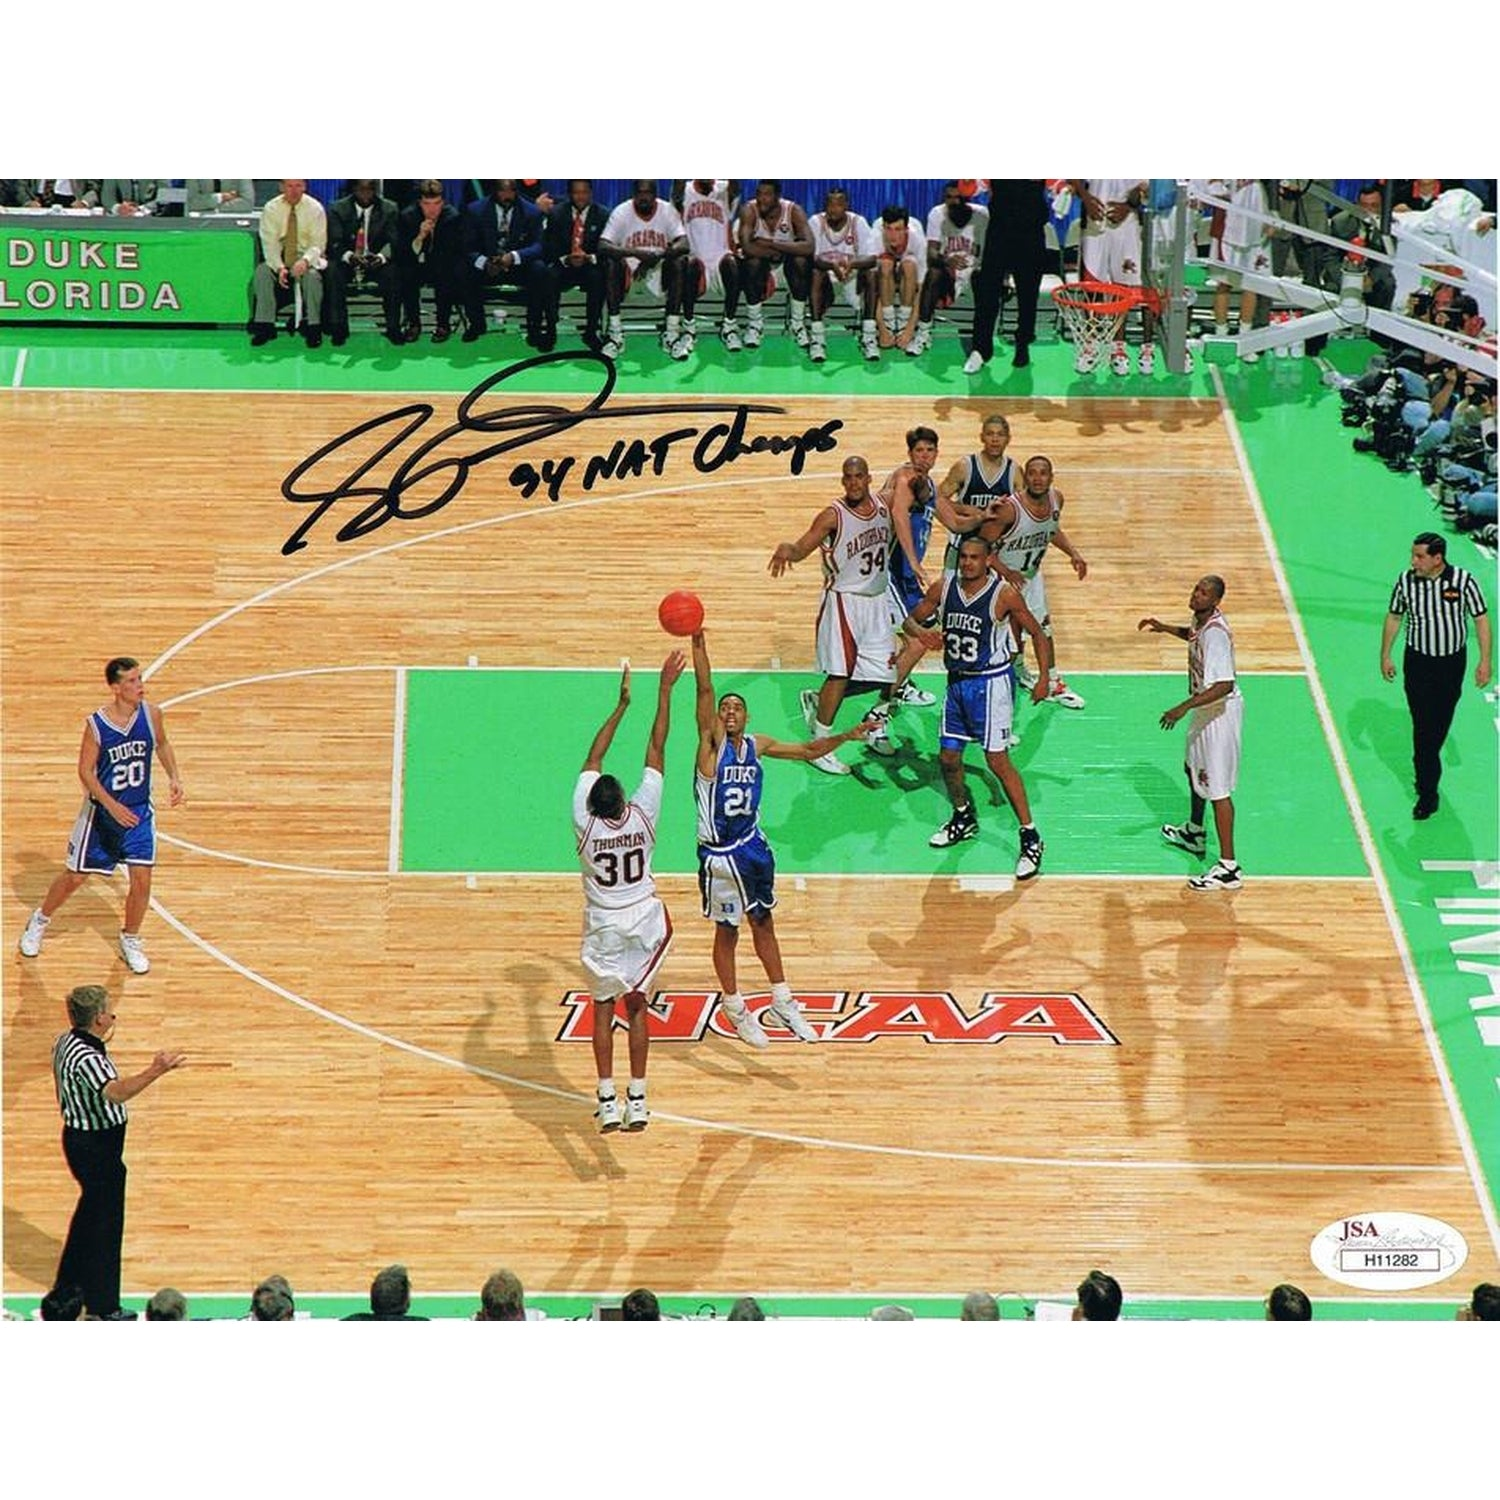 Scotty Thurman Autographed Arkansas Basketball 1994 CHAMPS Signed Basketball 8x10 Photo JSA COA-Powers Sports Memorabilia